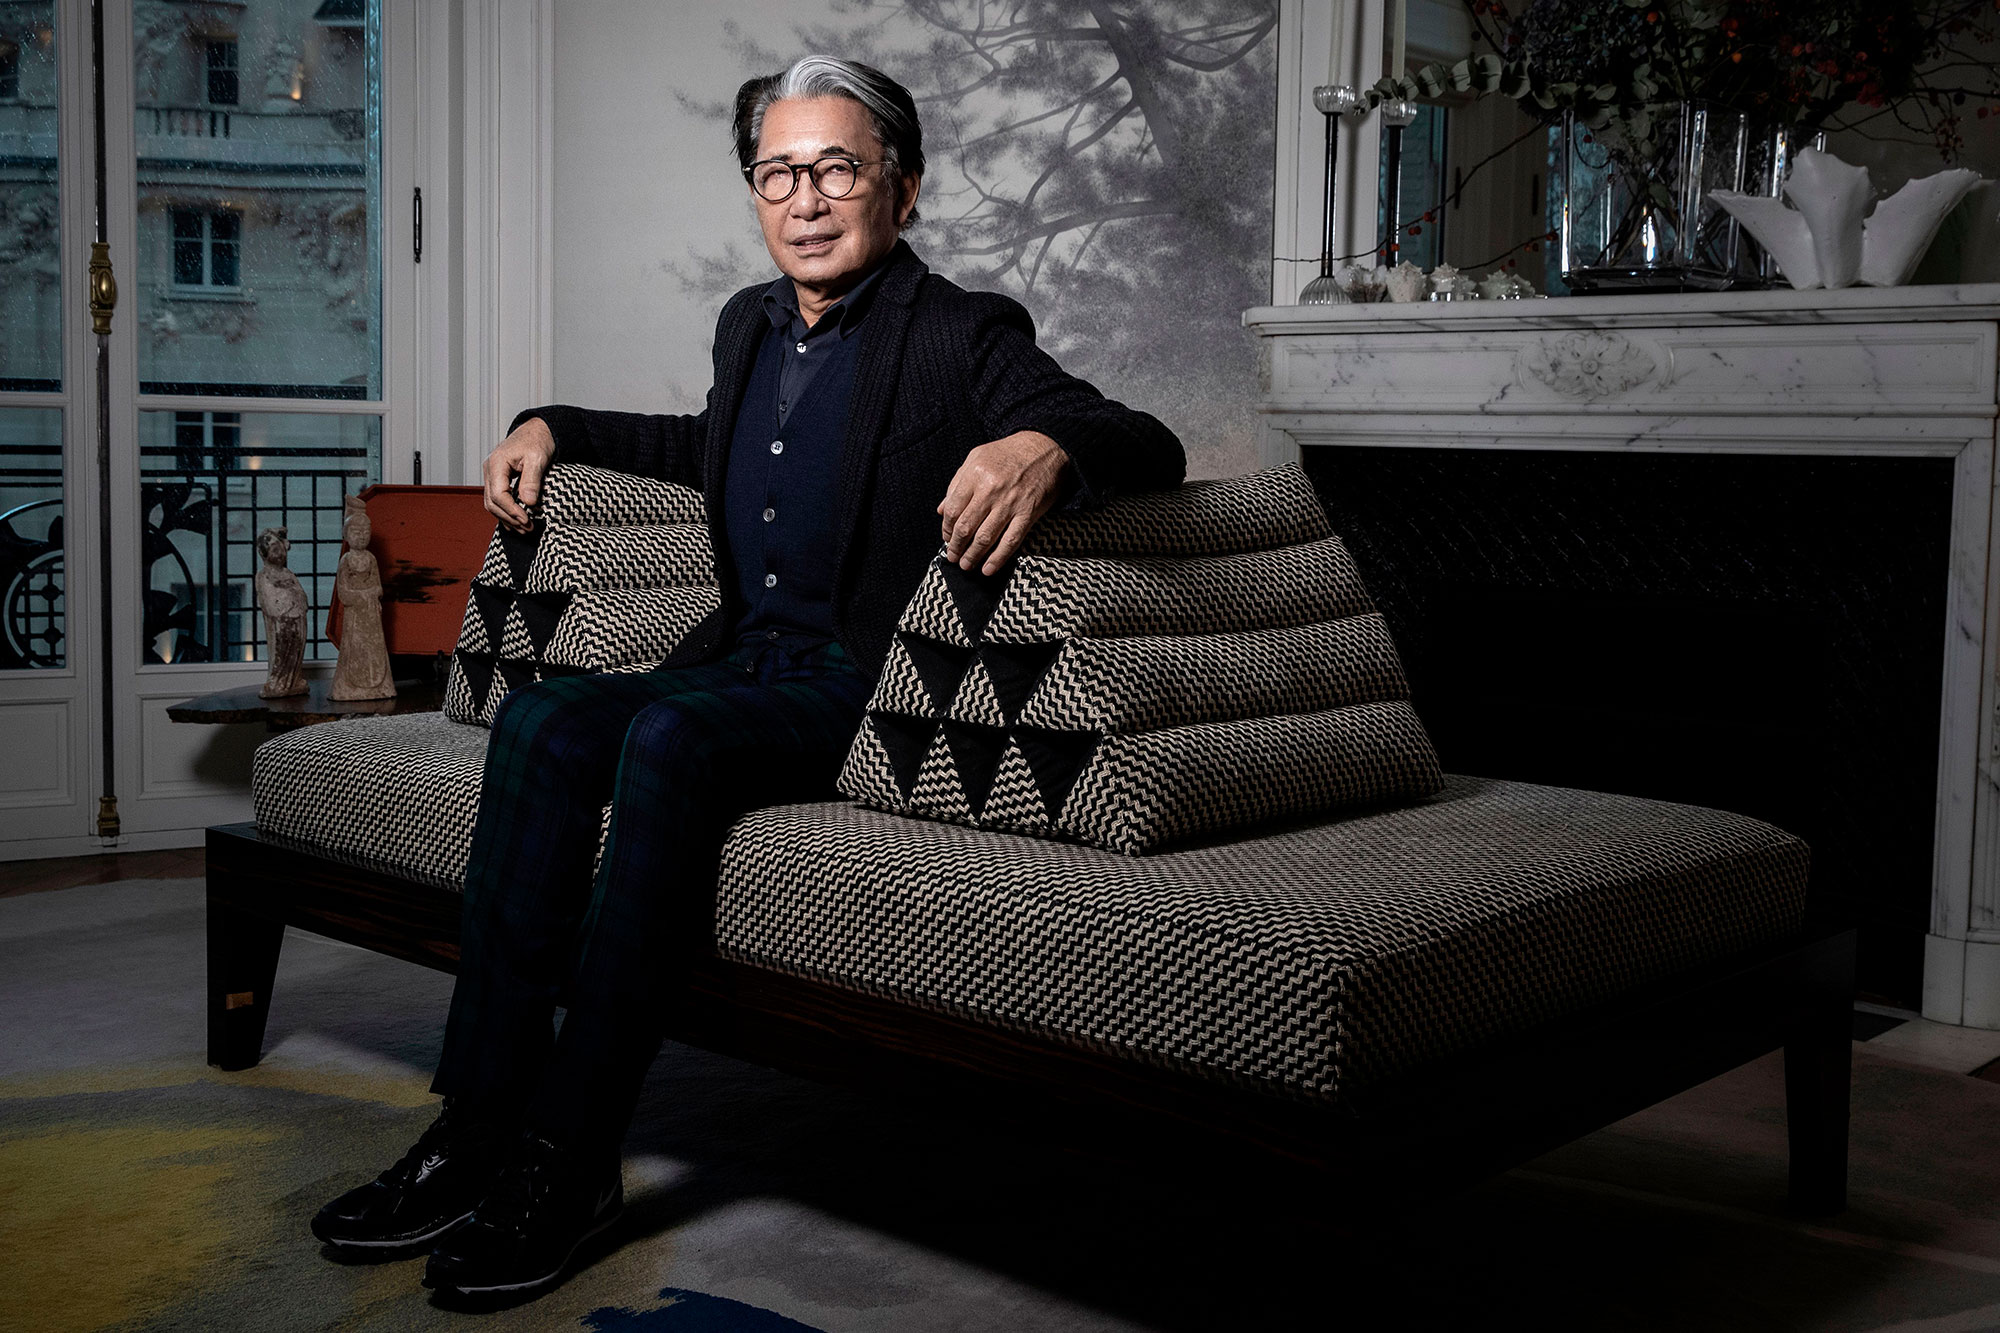 Kenzo Takada, founder of the Kenzo Global brand, dies at 81 from COVID-19 | EW.com